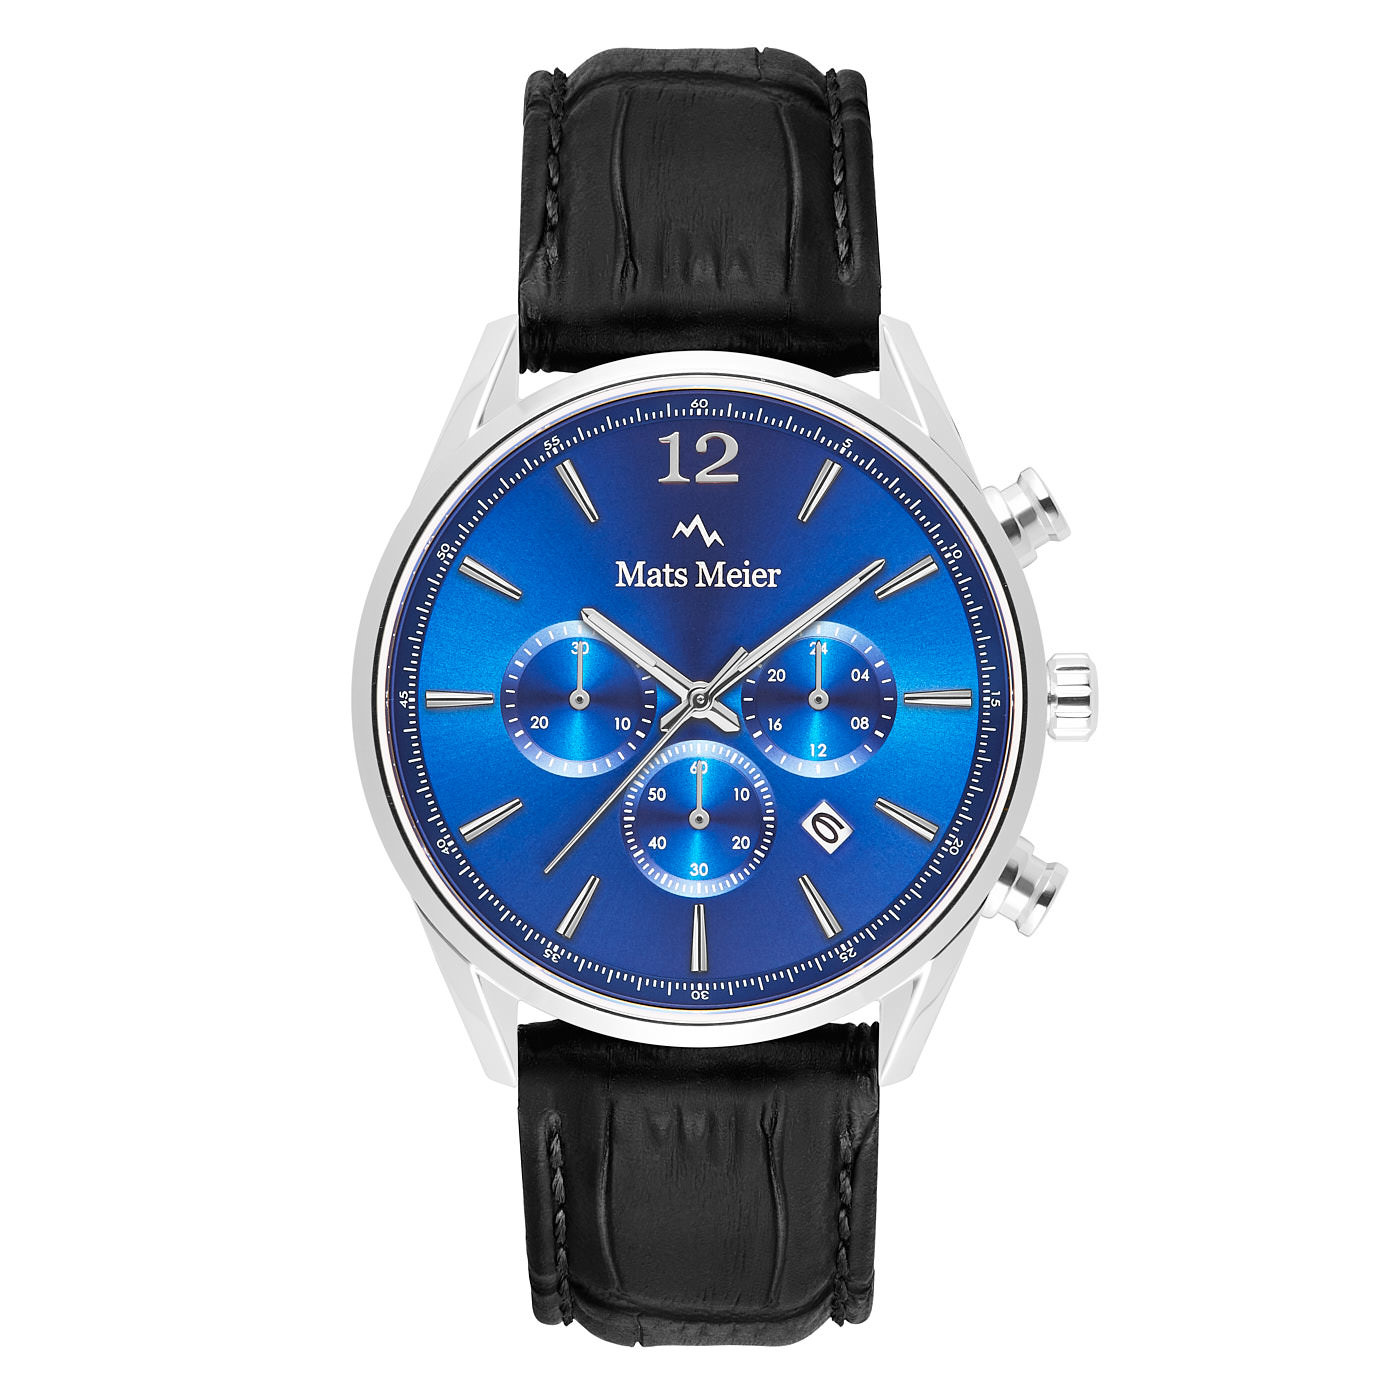 Mats Meier Grand Cornier chronograph mens watch blue / black